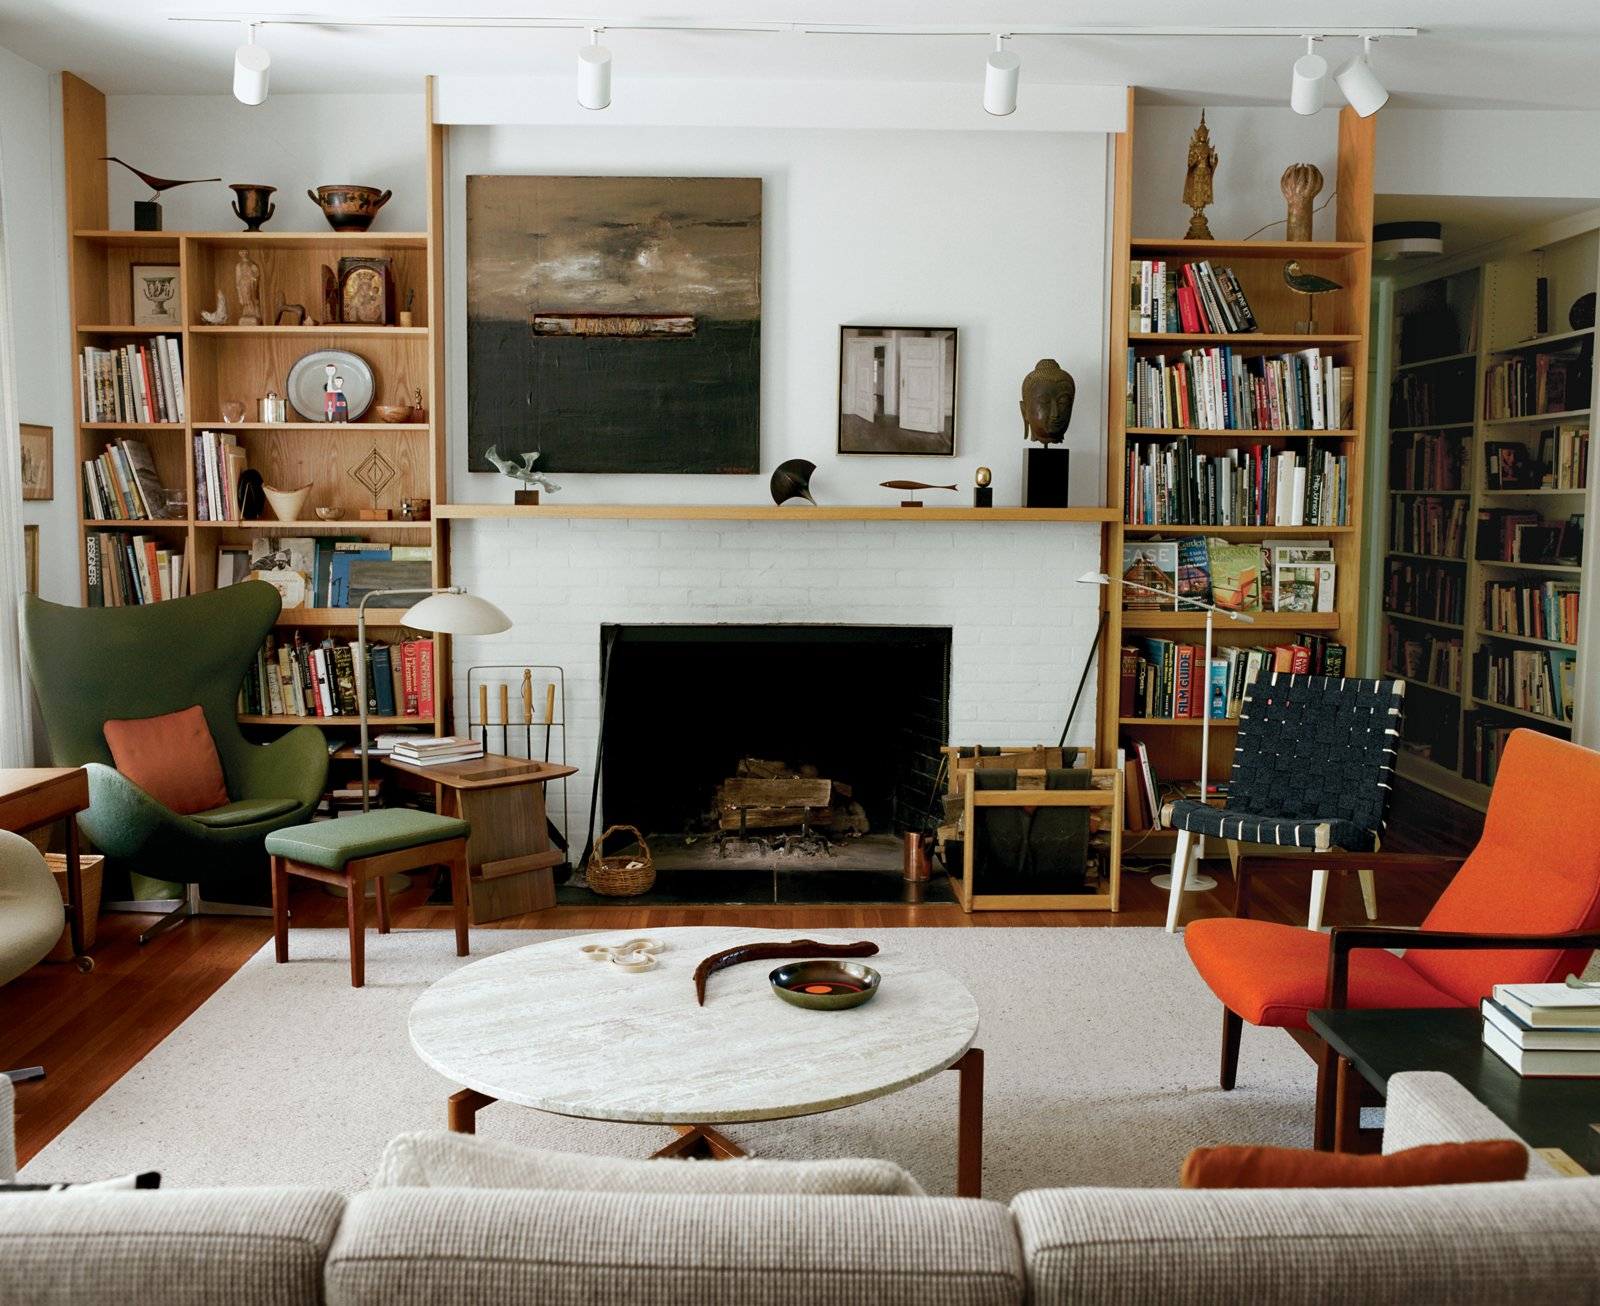 One of the few pieces of furniture in the Risom living room not designed by Risom himself is the Egg chair by fellow Dane Arne Jacobsen. A painting by Sven Hammershoj graces the mantle.  Photo 6 of 6 in Fascinating Risom